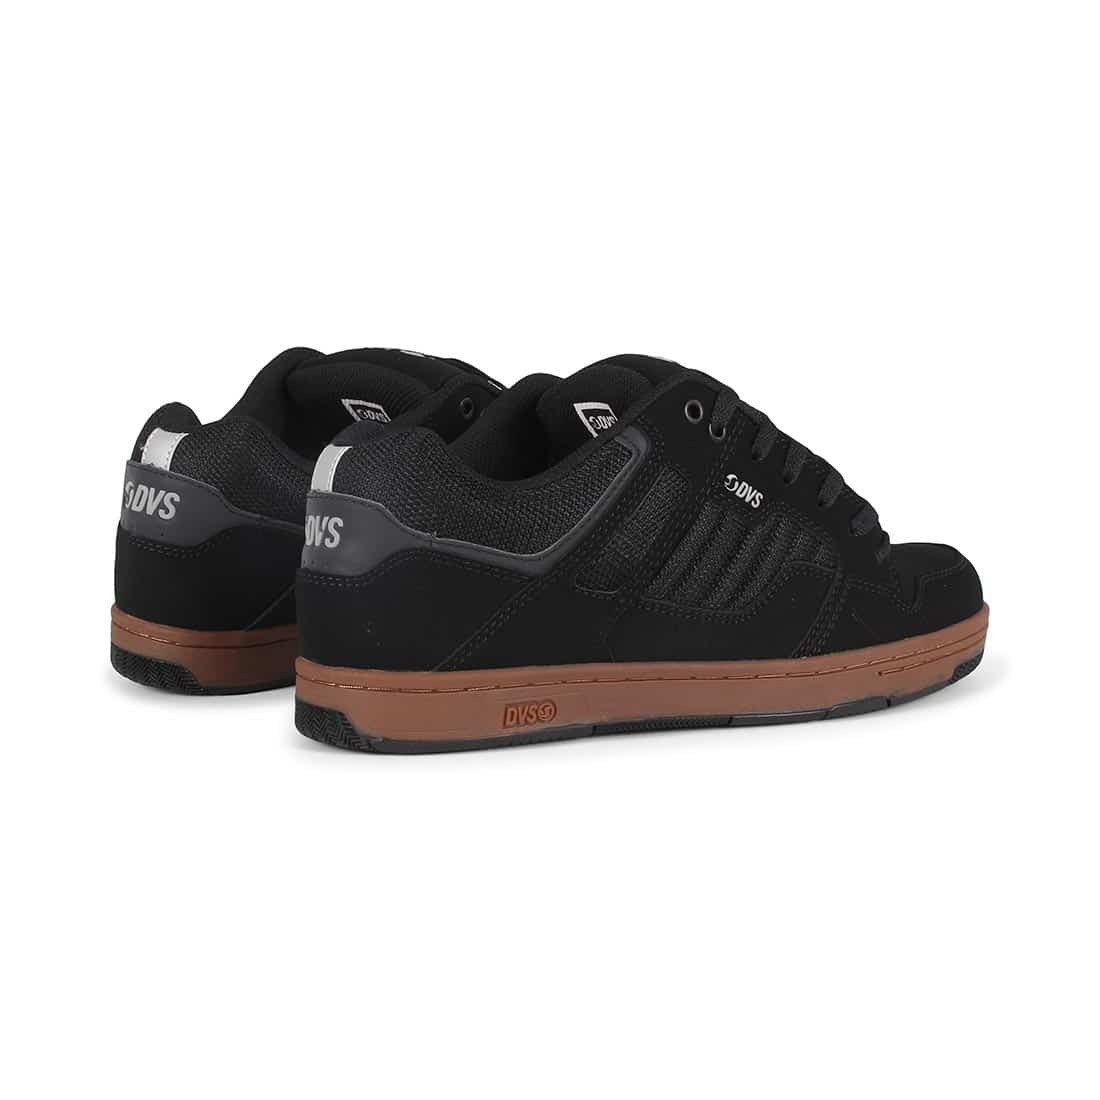 DVS Enduro 125 Shoes – Black / Gum / Flash Pack